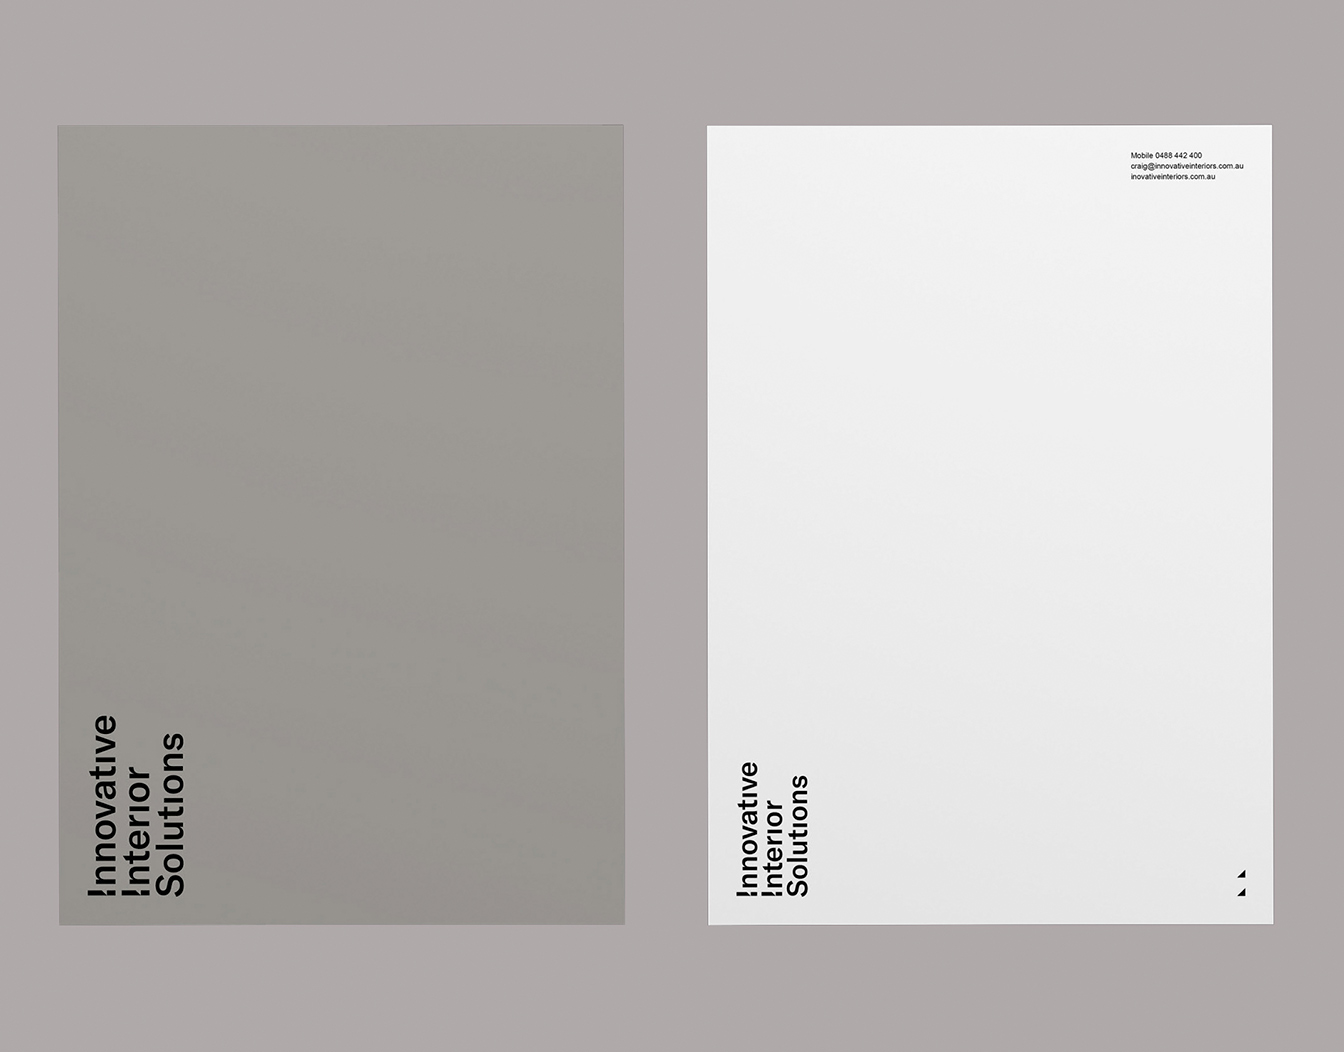 Two letterhead with clear fonts